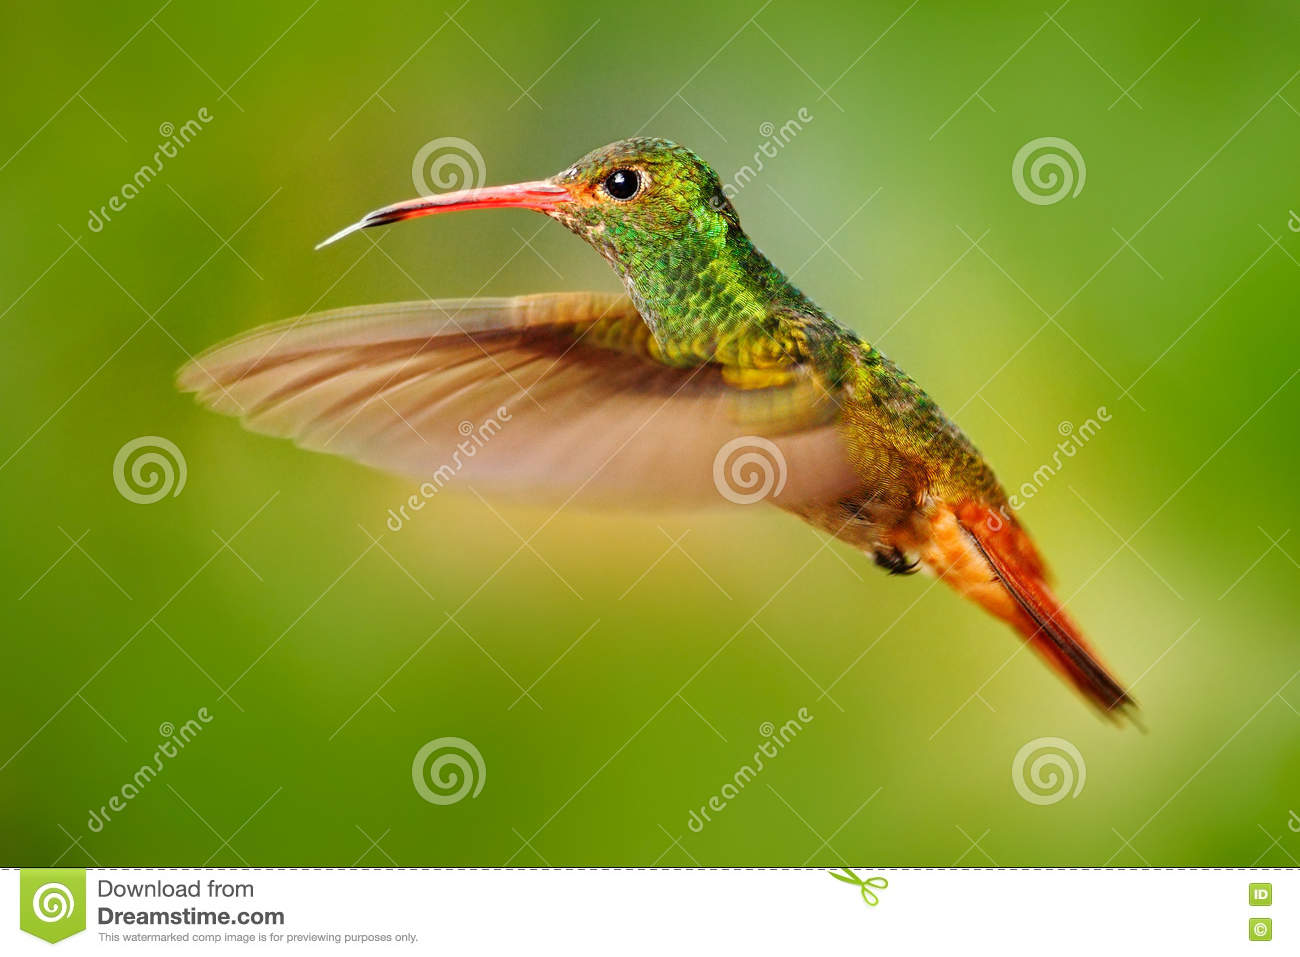 Flying bird, hummingbird Rufous-tailed Hummingbird. Hummingbird with clear green background in Ecuador. Hummingbird in the nature